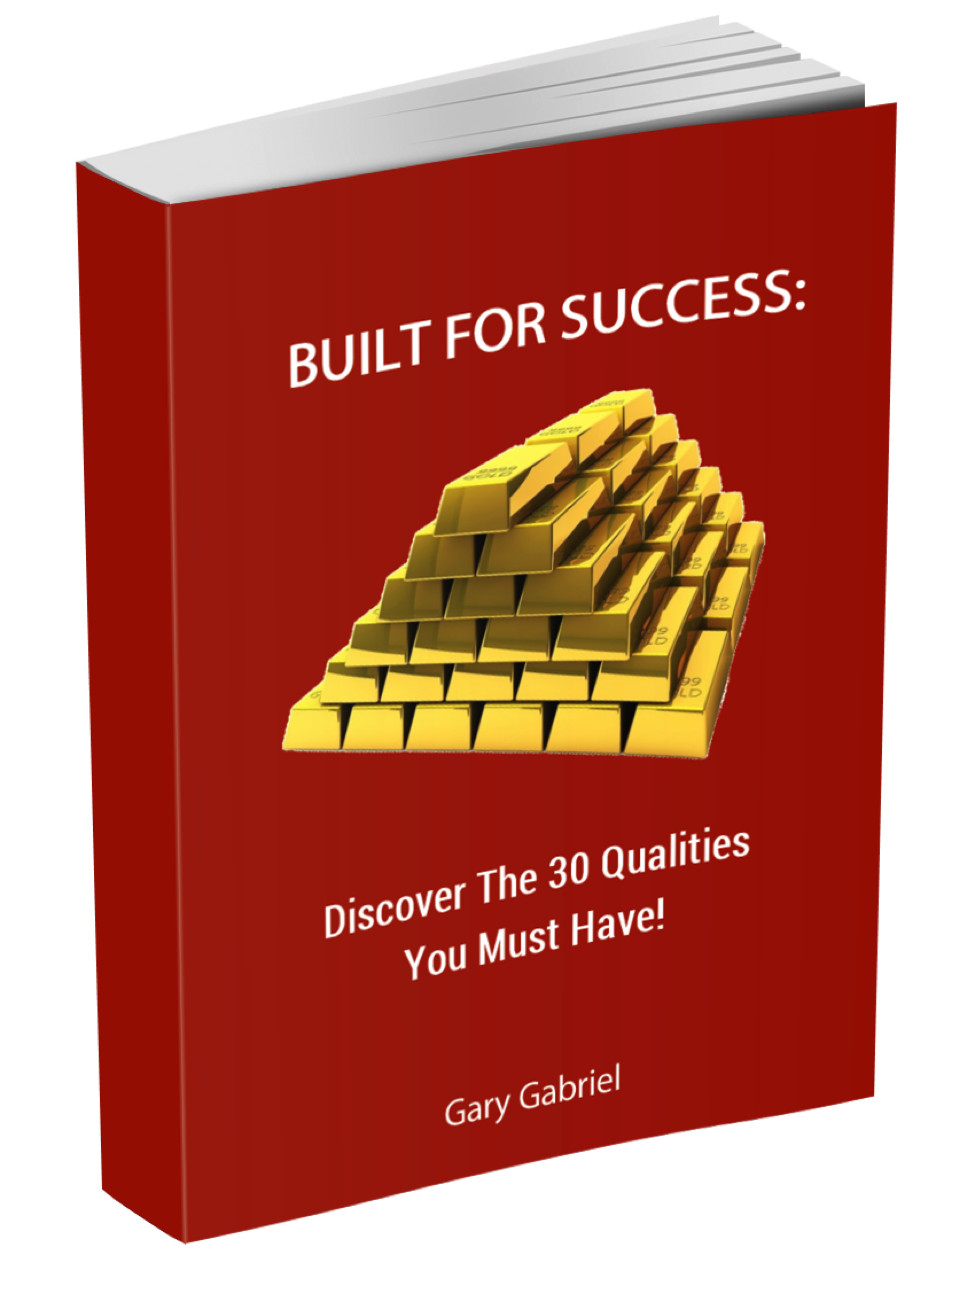 Book Image for Built For Success: Discover The 30 Qualities You Must Have